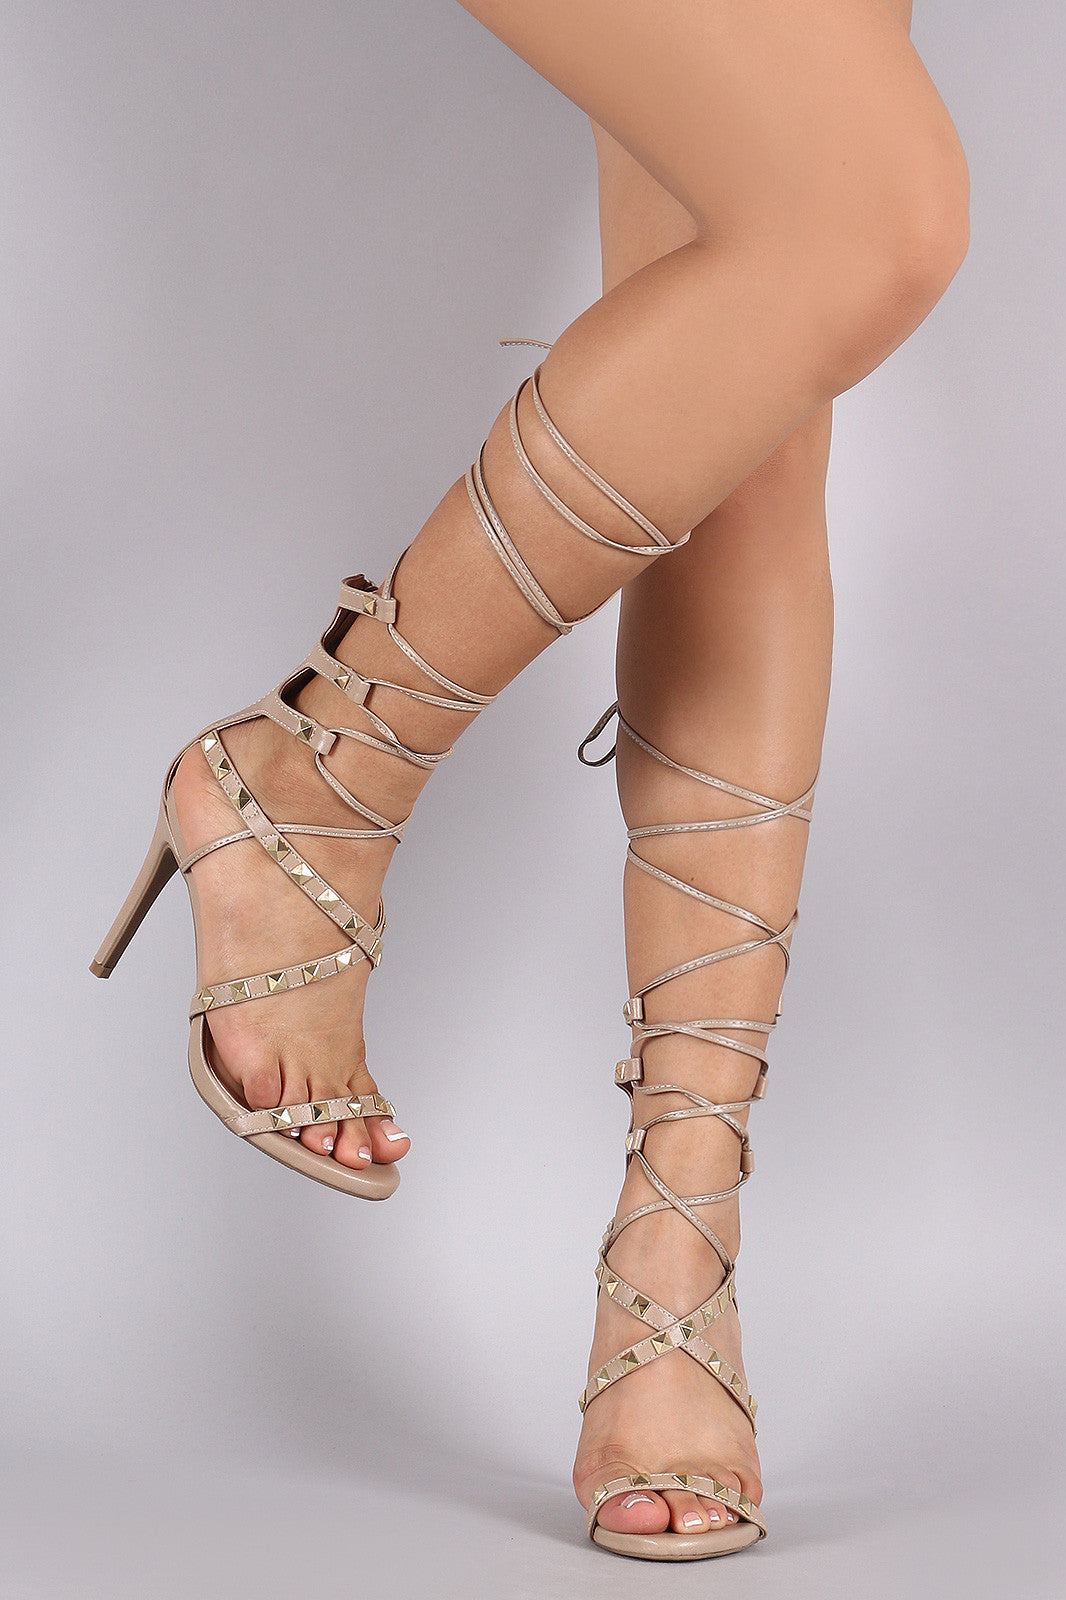 Wild Diva Lounge Studded Strappy Lace-Up Heel - Thick 'N' Curvy Shop - 3